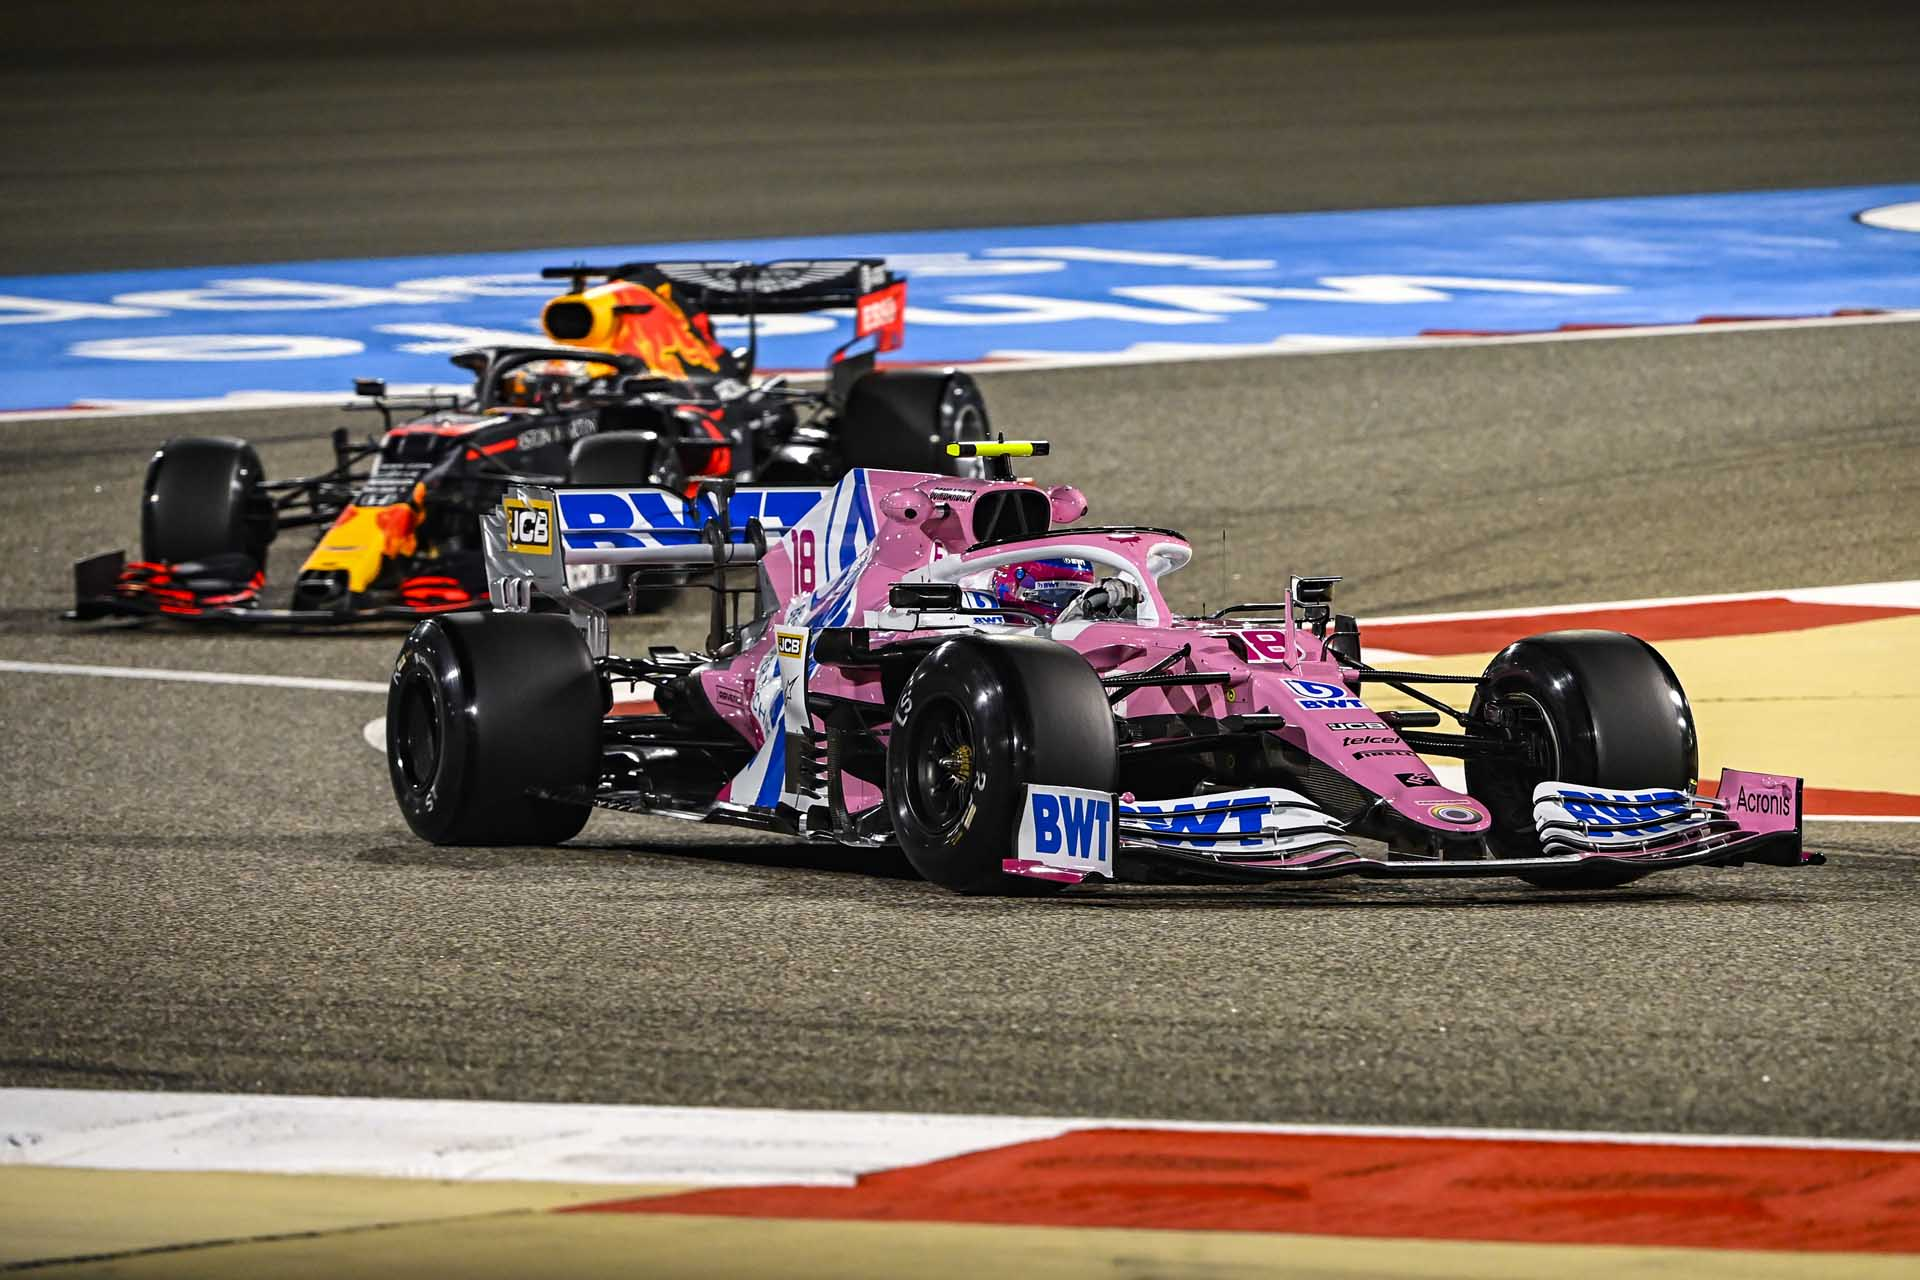 Lance Stroll, Racing Point RP20, leads Max Verstappen, Red Bull Racing RB16